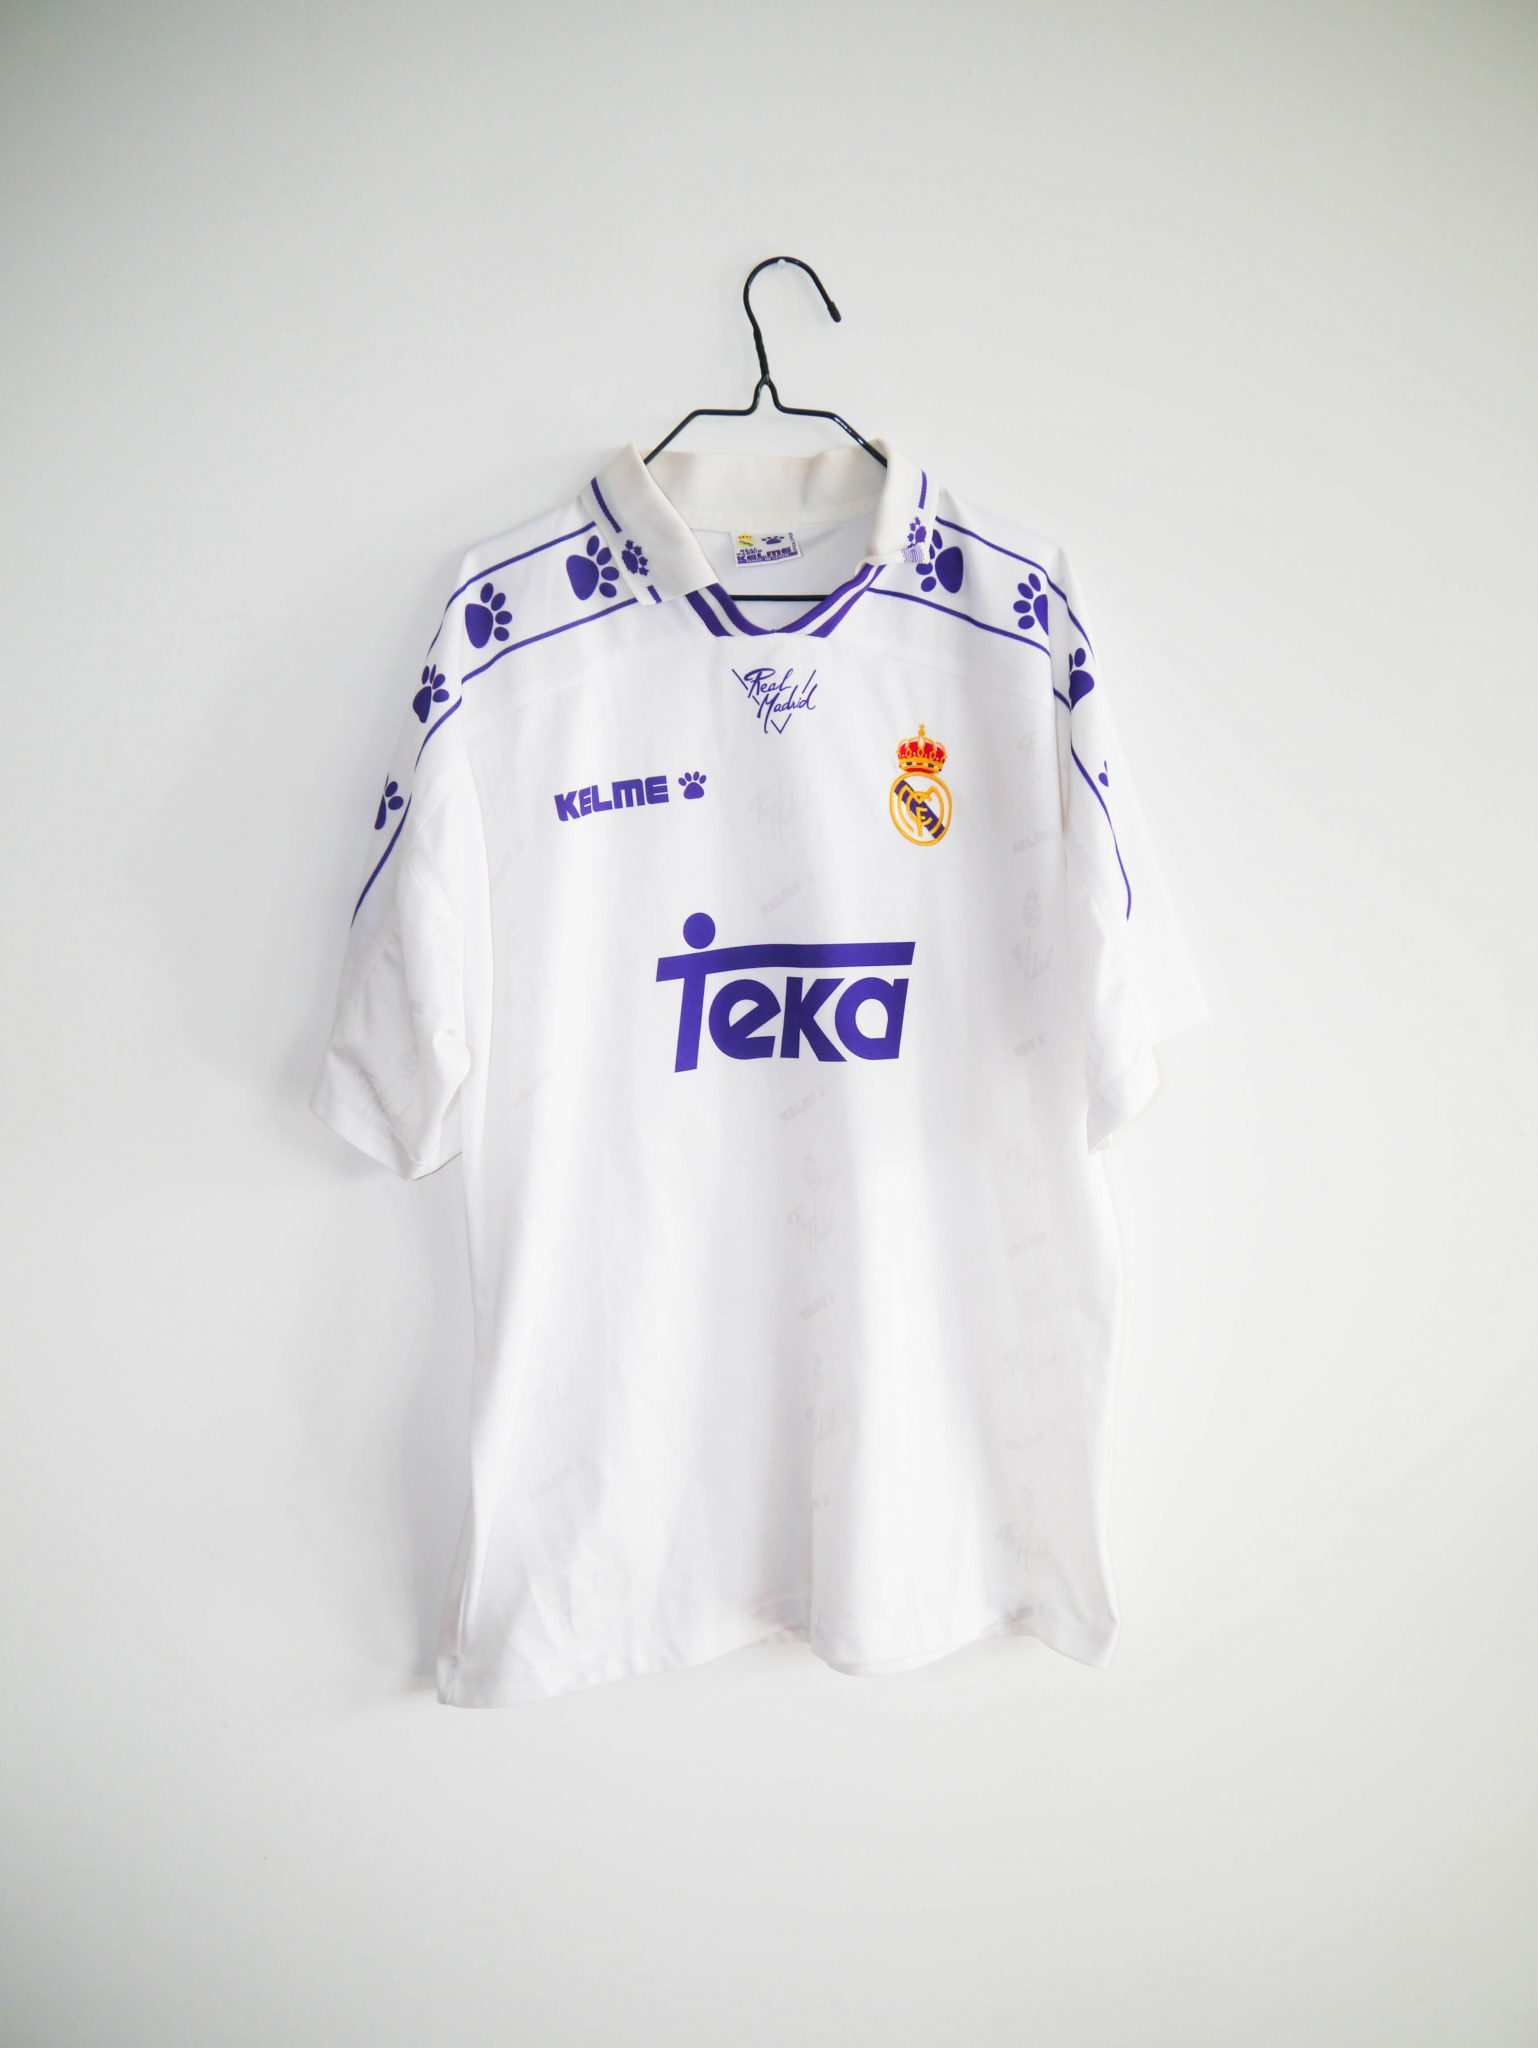 d669f8fb7 Home / Shop / Spanish Clubs / Real Madrid / Original 1994-95 Real Madrid  home jersey – XL